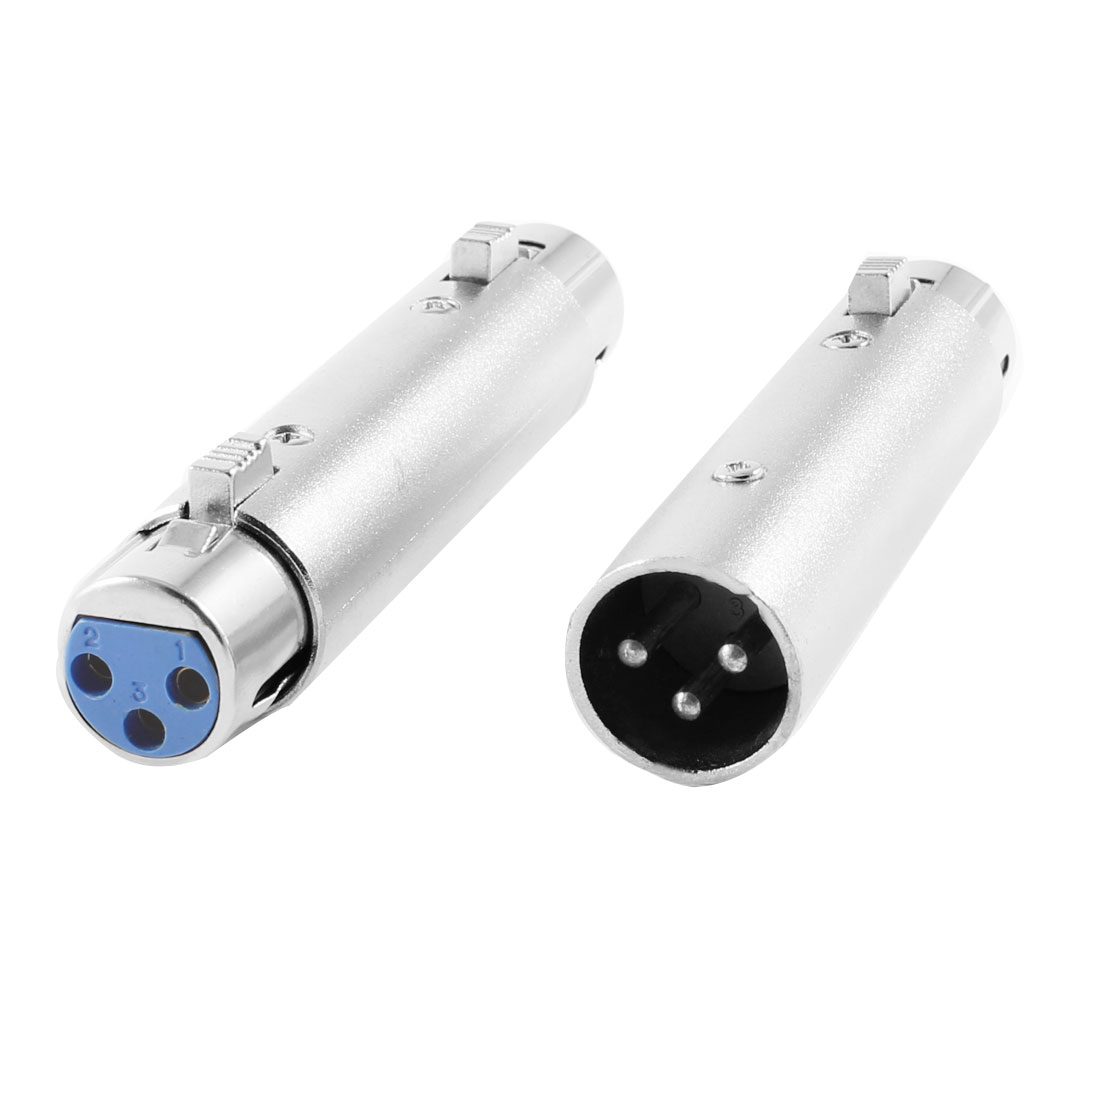 Pair XLR 3 Pin Female + Male to XLR 3 Pin Female Socket Audio Adapter Silver Tone